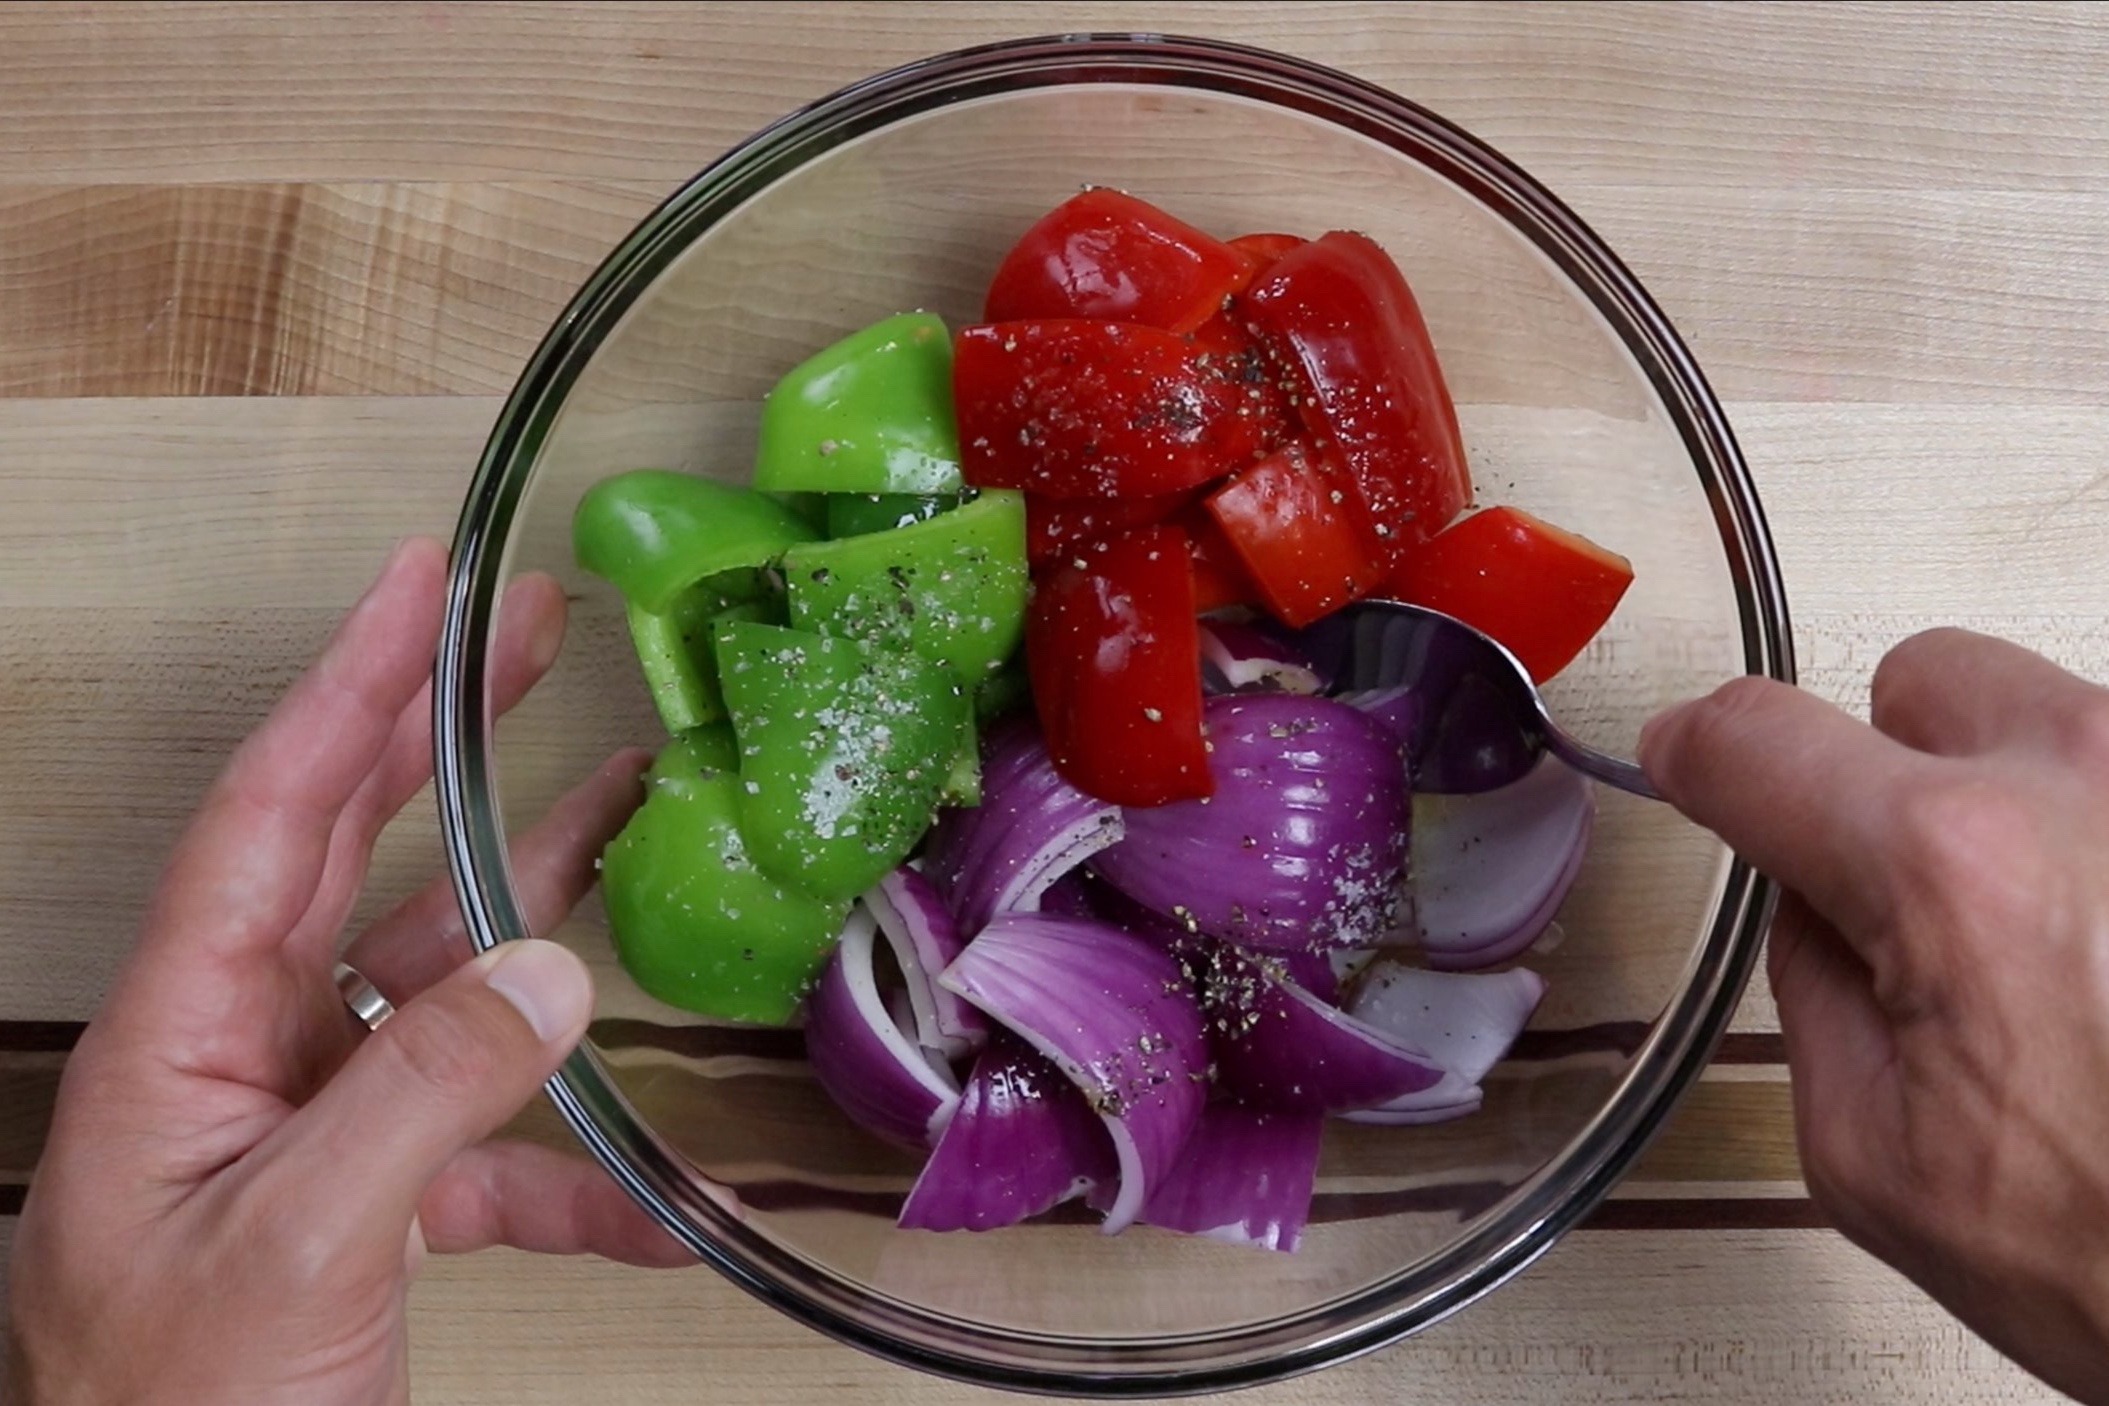 7. Add the olive oil, salt and pepper to the veggies and stir until all pieces are coated. Set aside. -